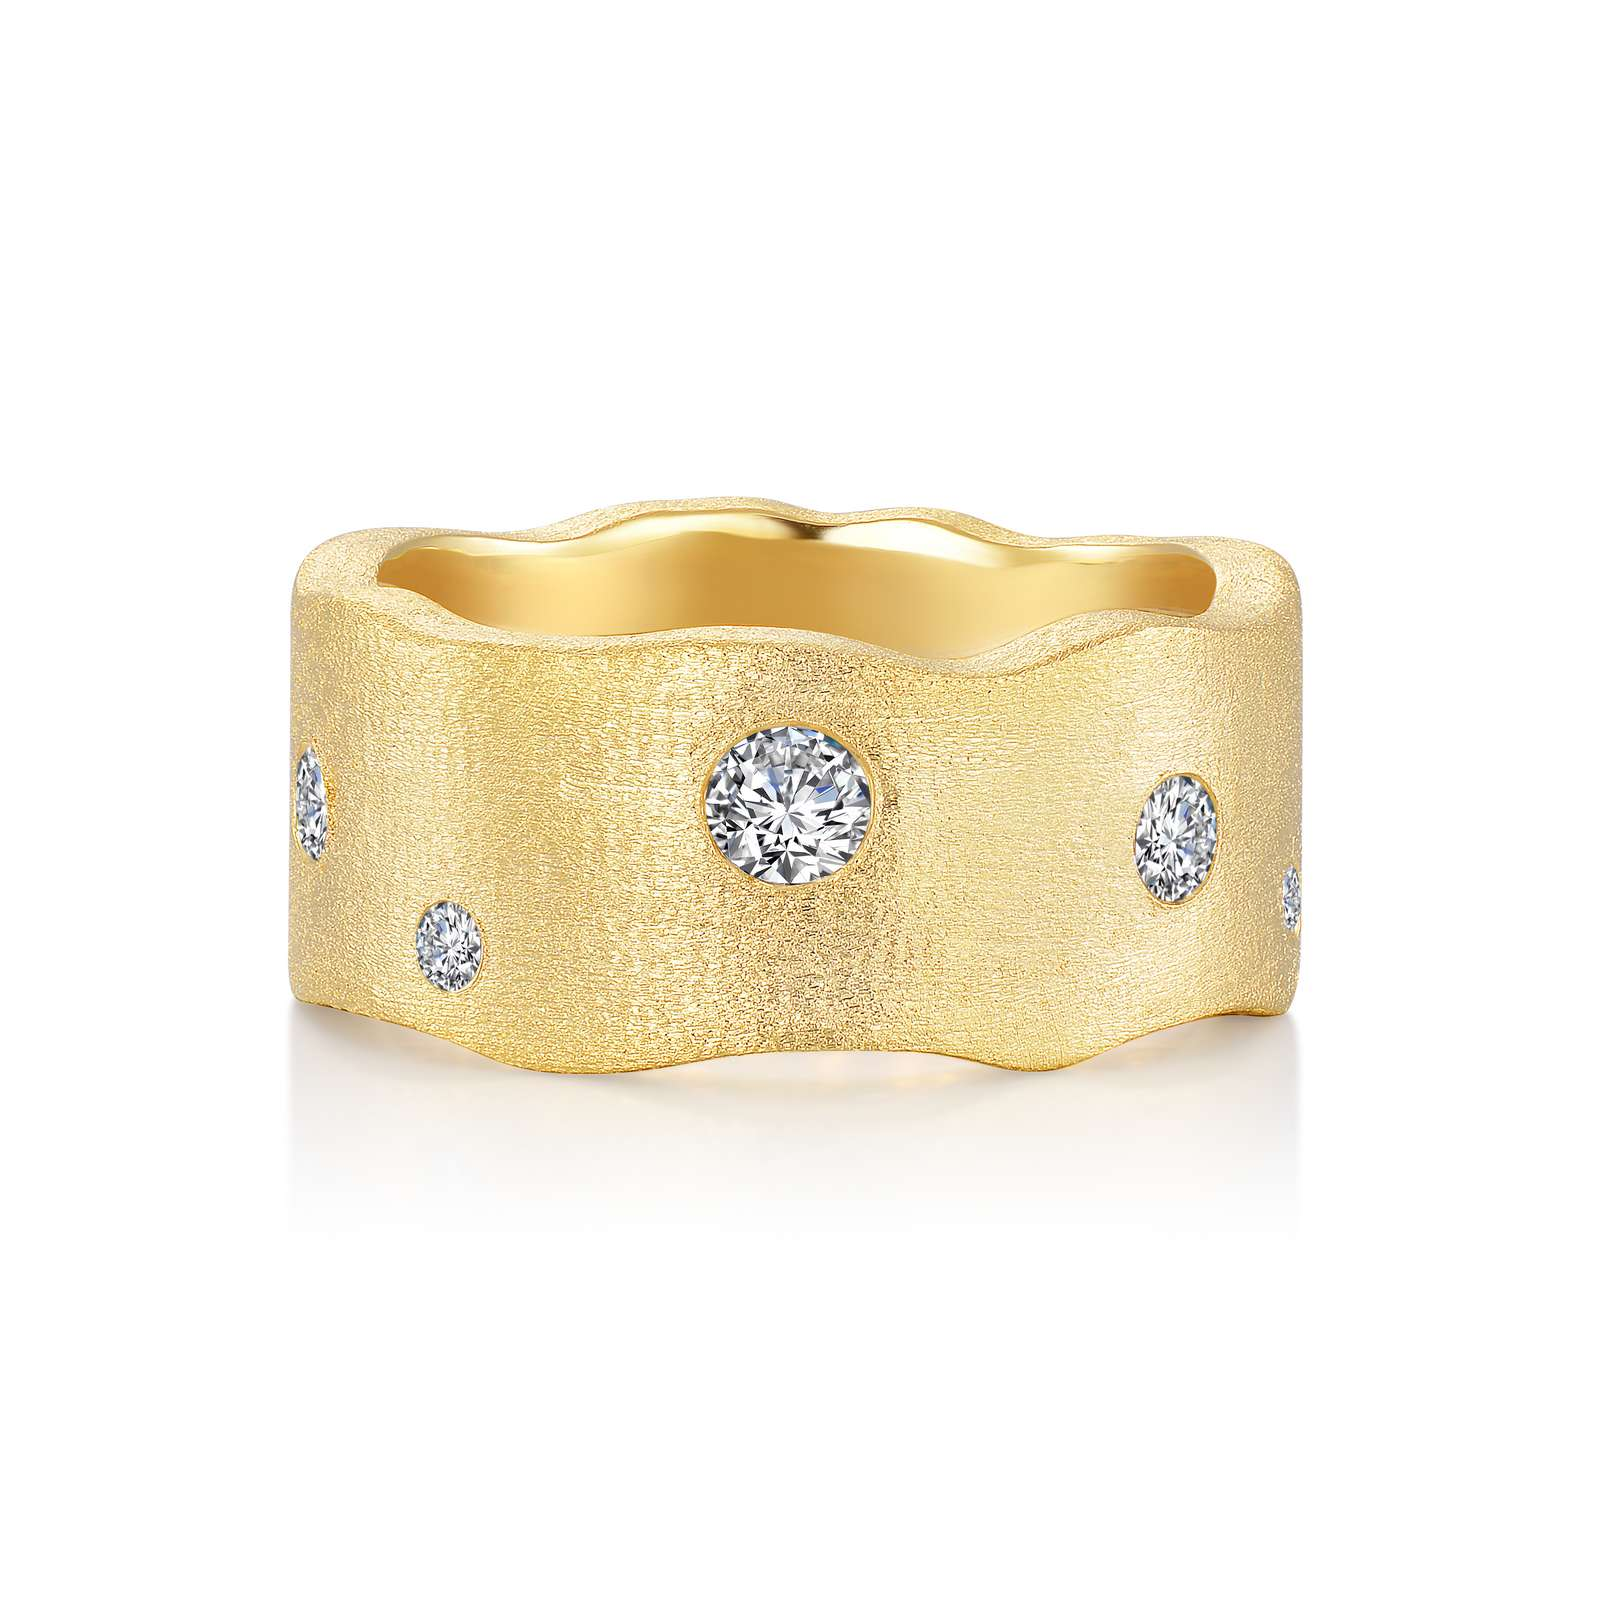 Lafonn Gold Club Simulated Diamond Gold Bonded Ring by Lafonn Jewelry